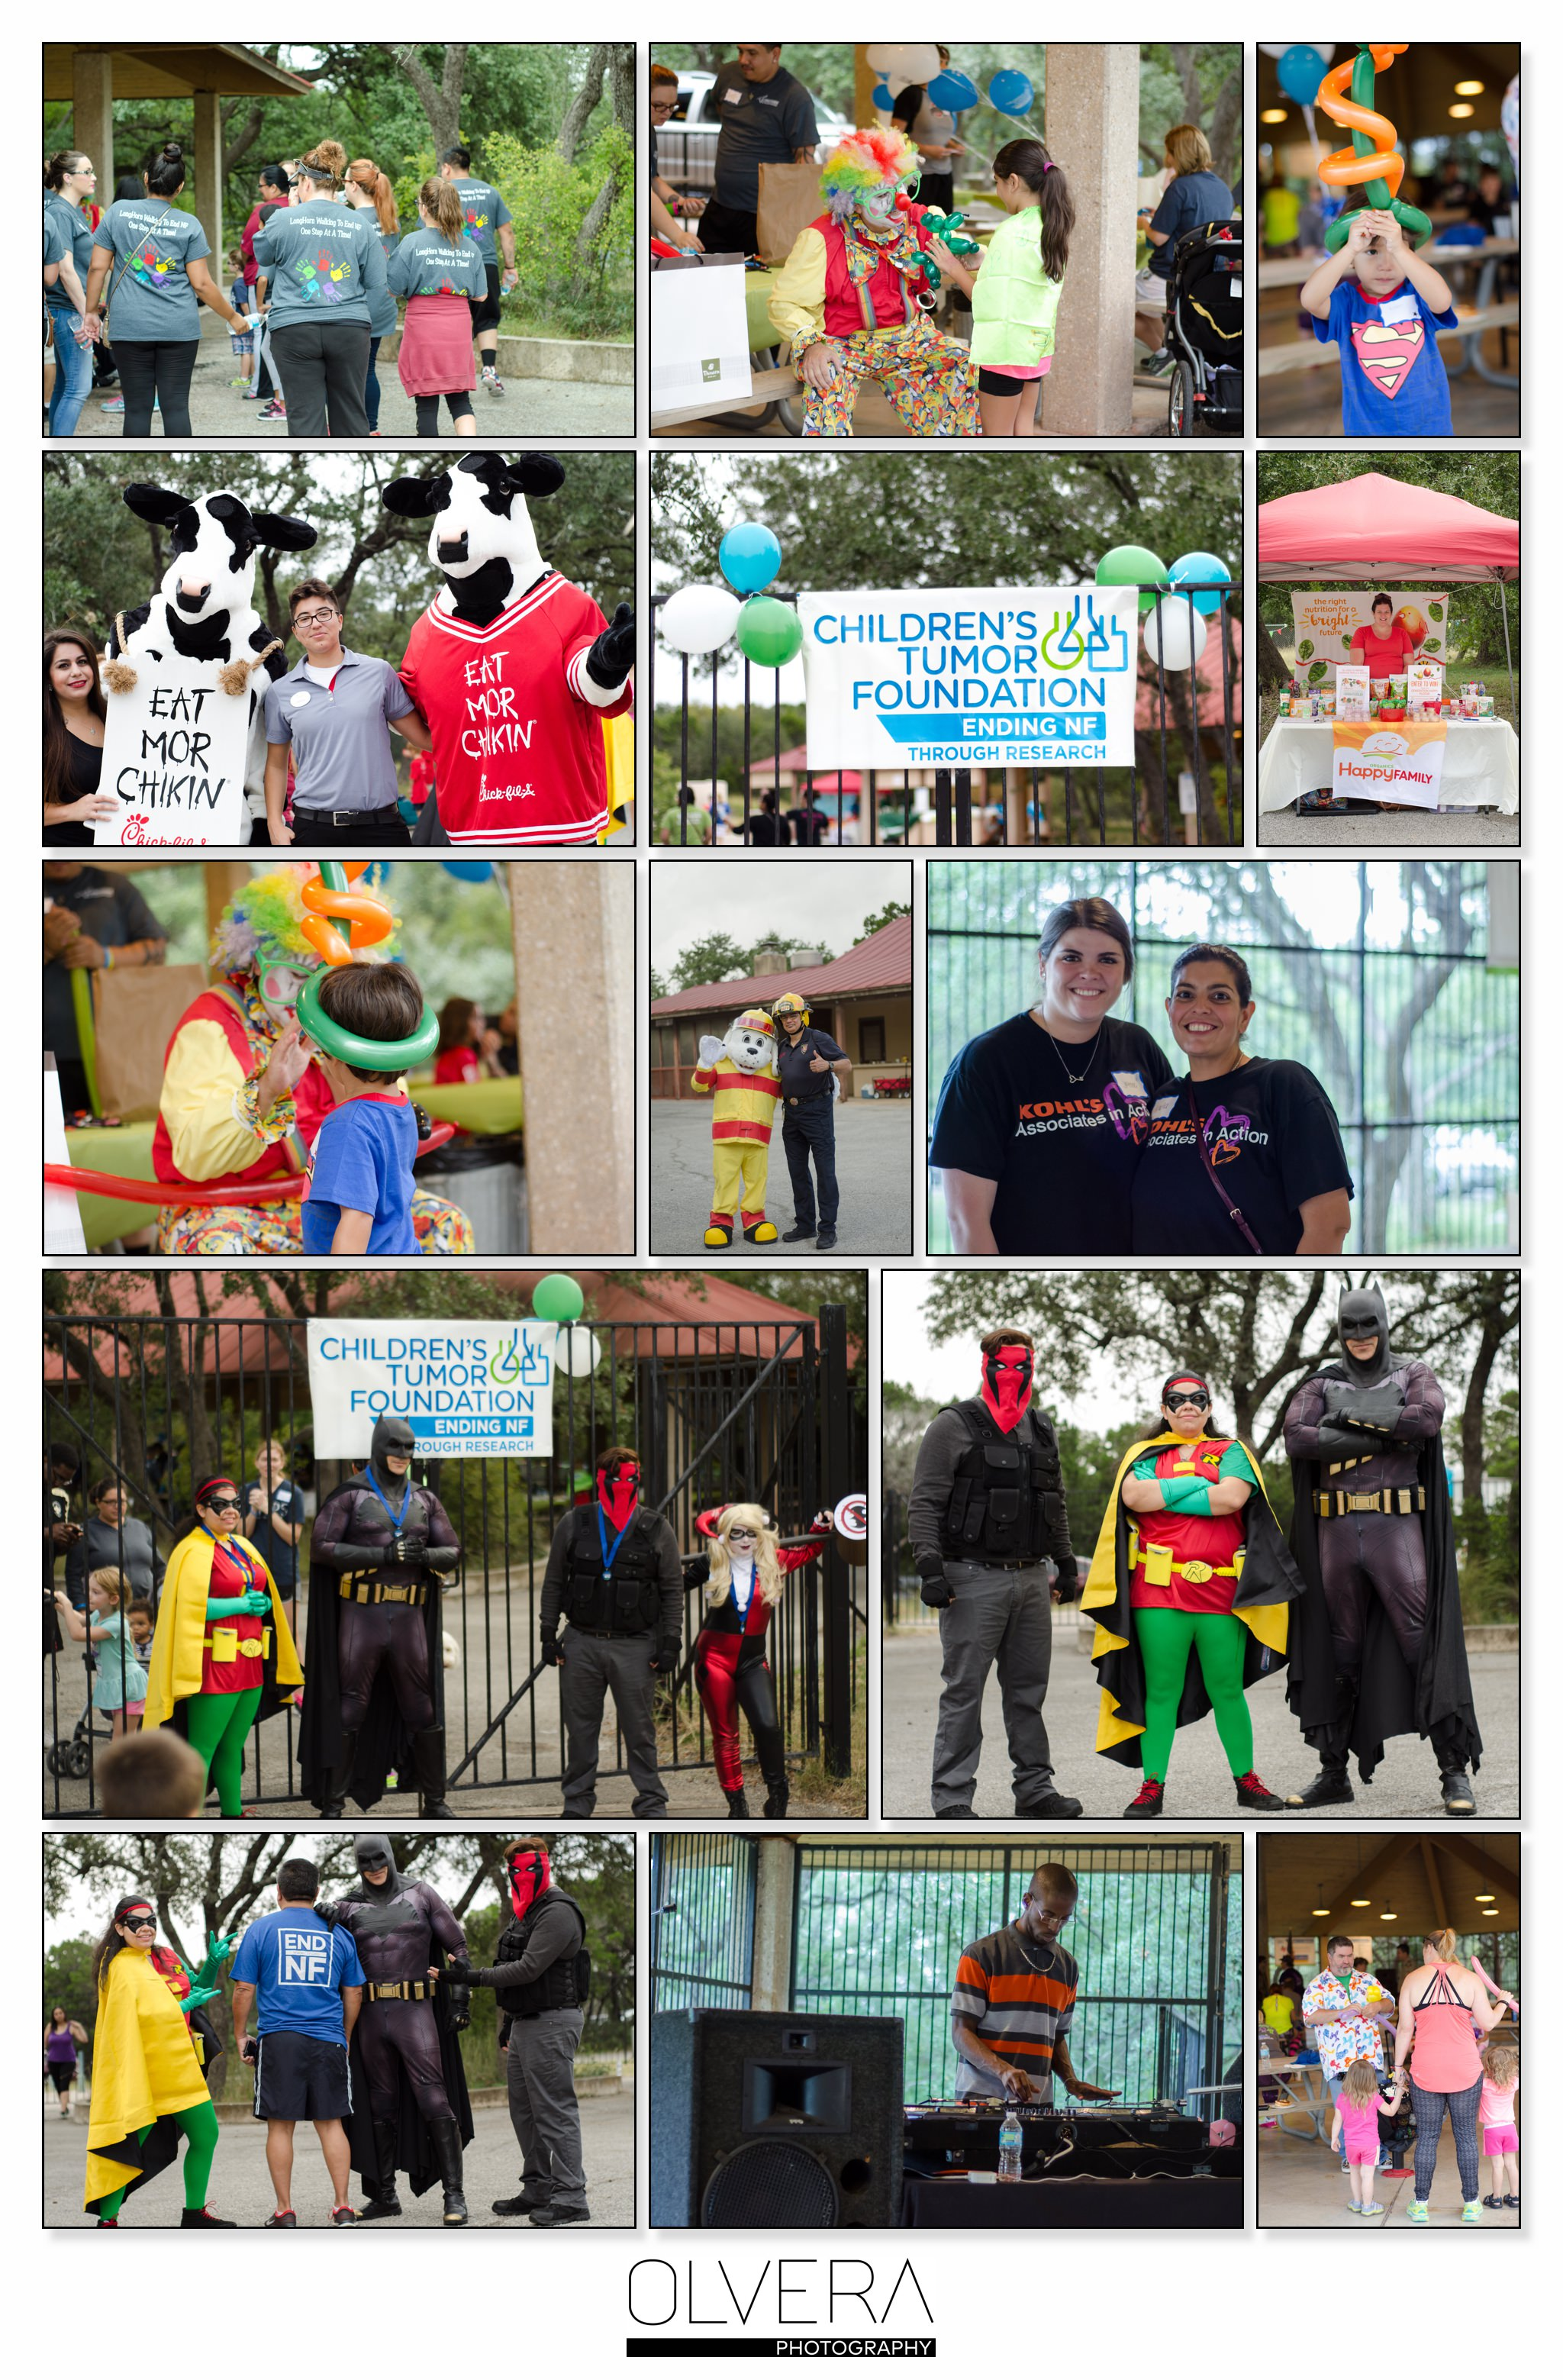 Children's Tumor Foundation_NF Walk_San Antonio_TX 2